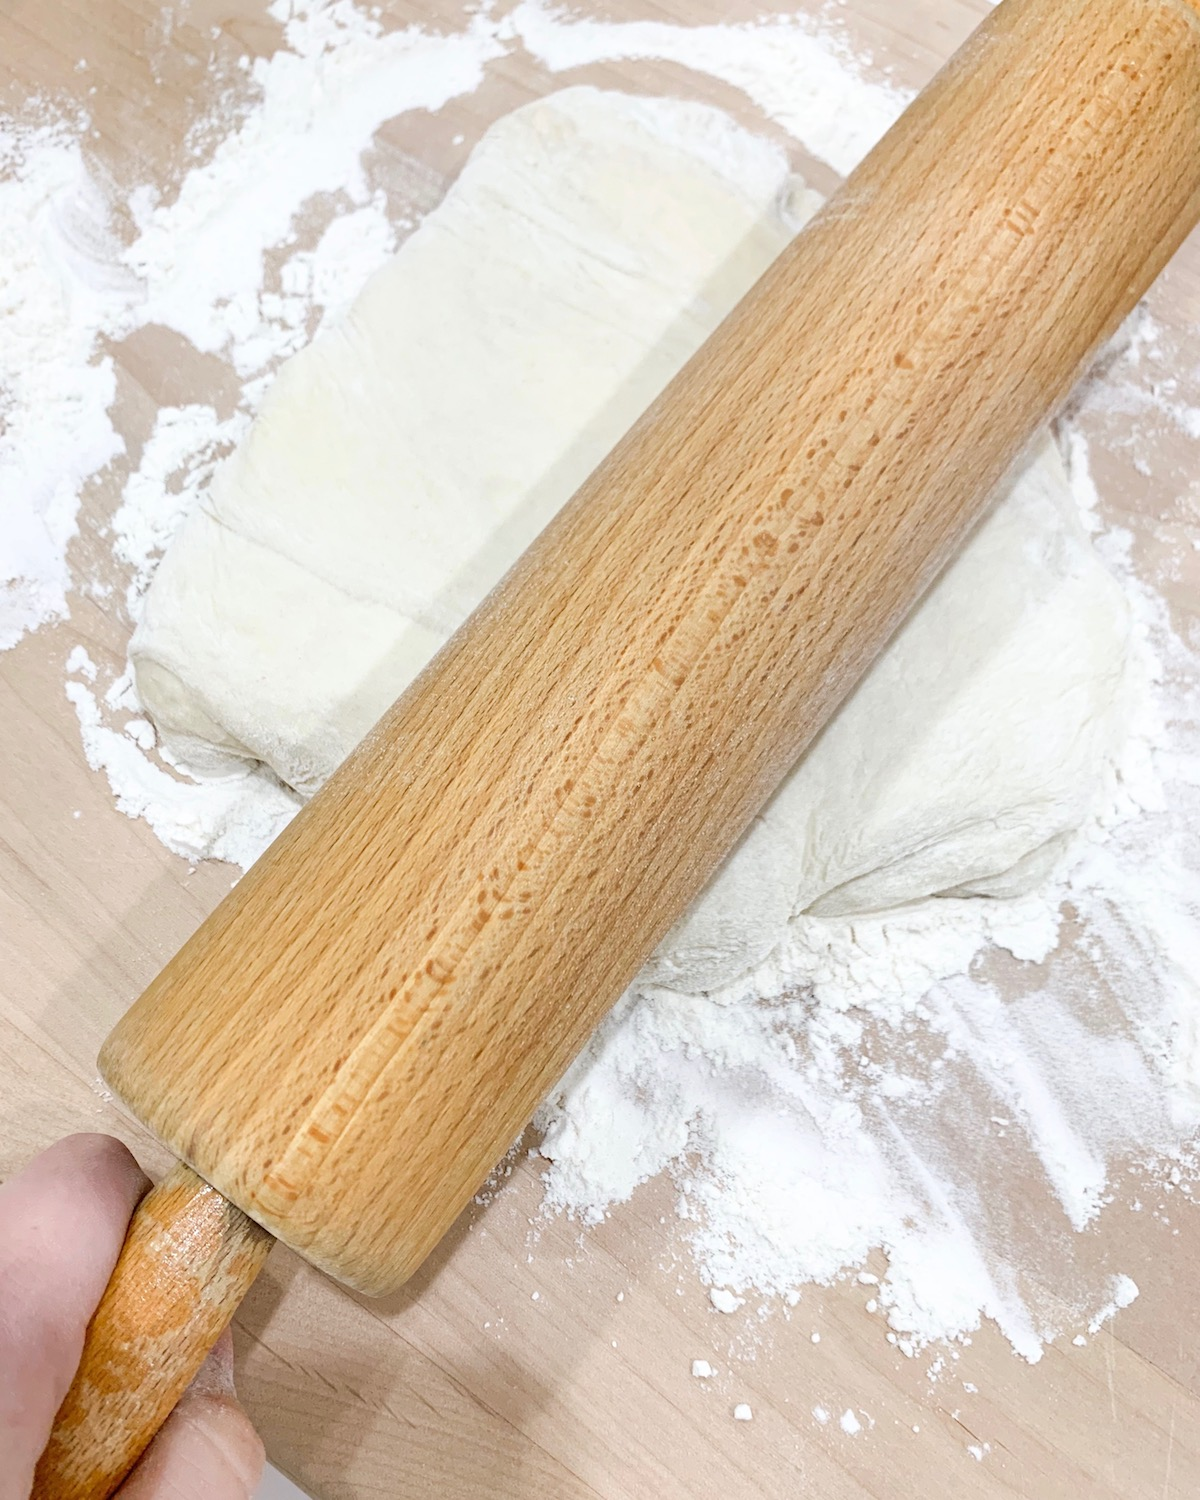 making pizza at home